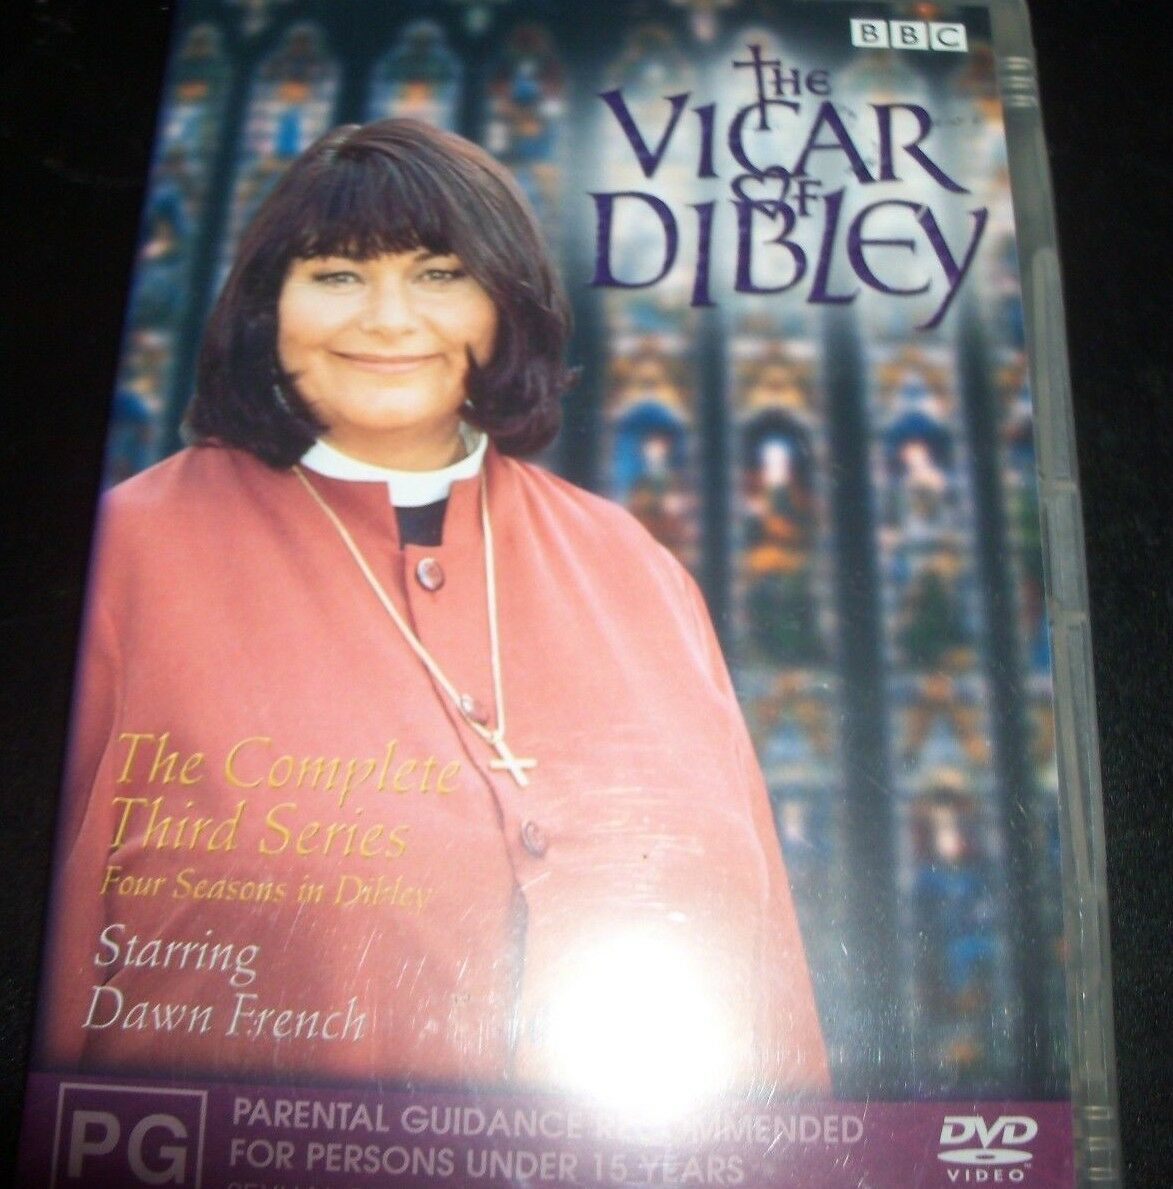 Watch Mary Dibley video